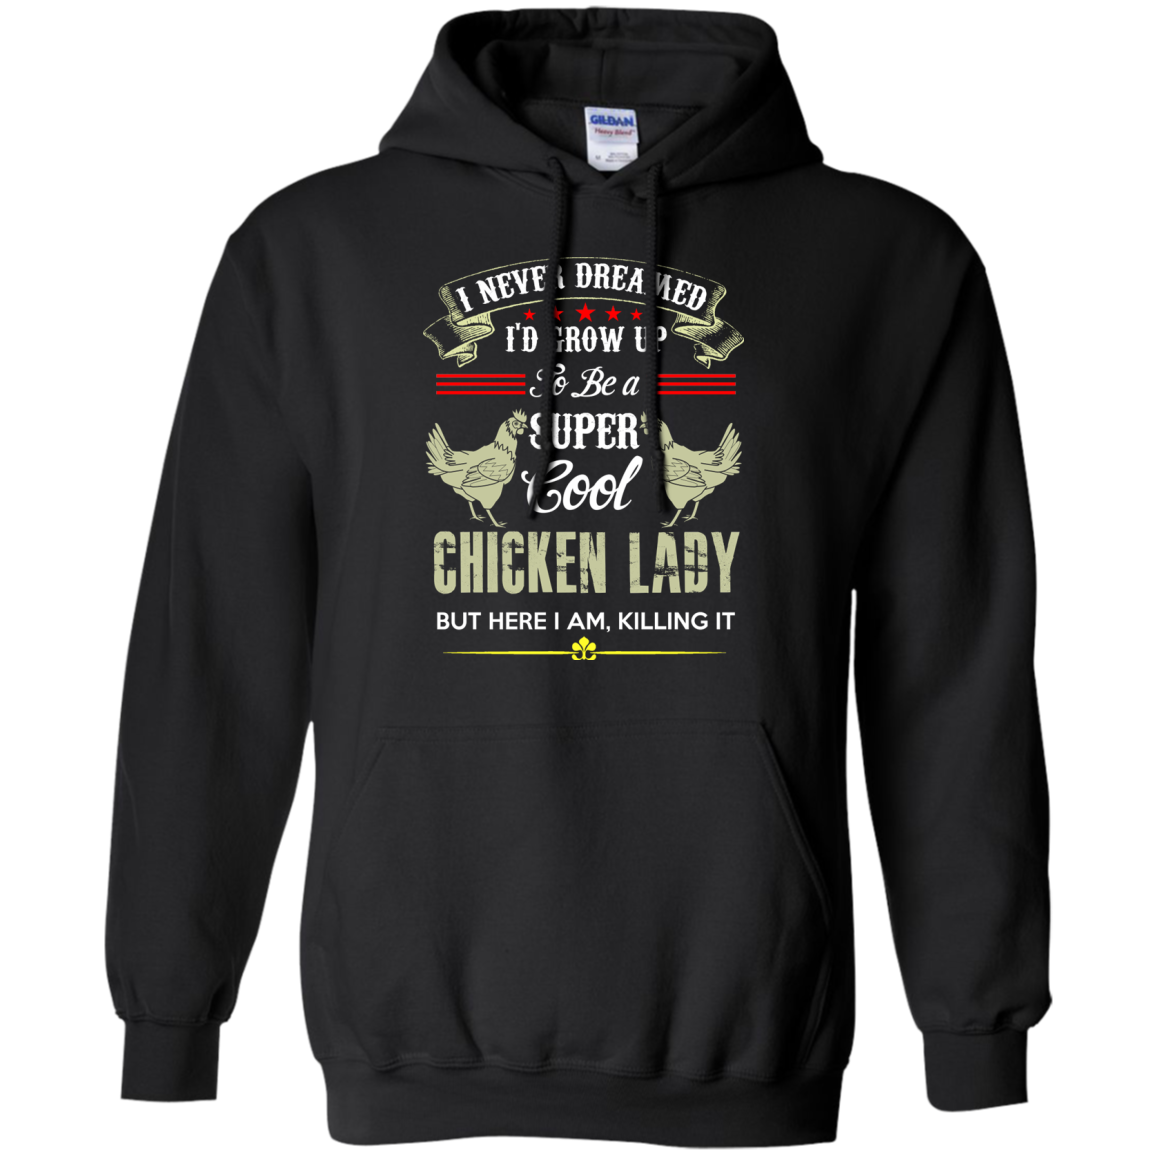 I Never Dreamed I'd Grow Up To Be a Super Cool Chicken Lady, but here I am Killing it! Hoodie